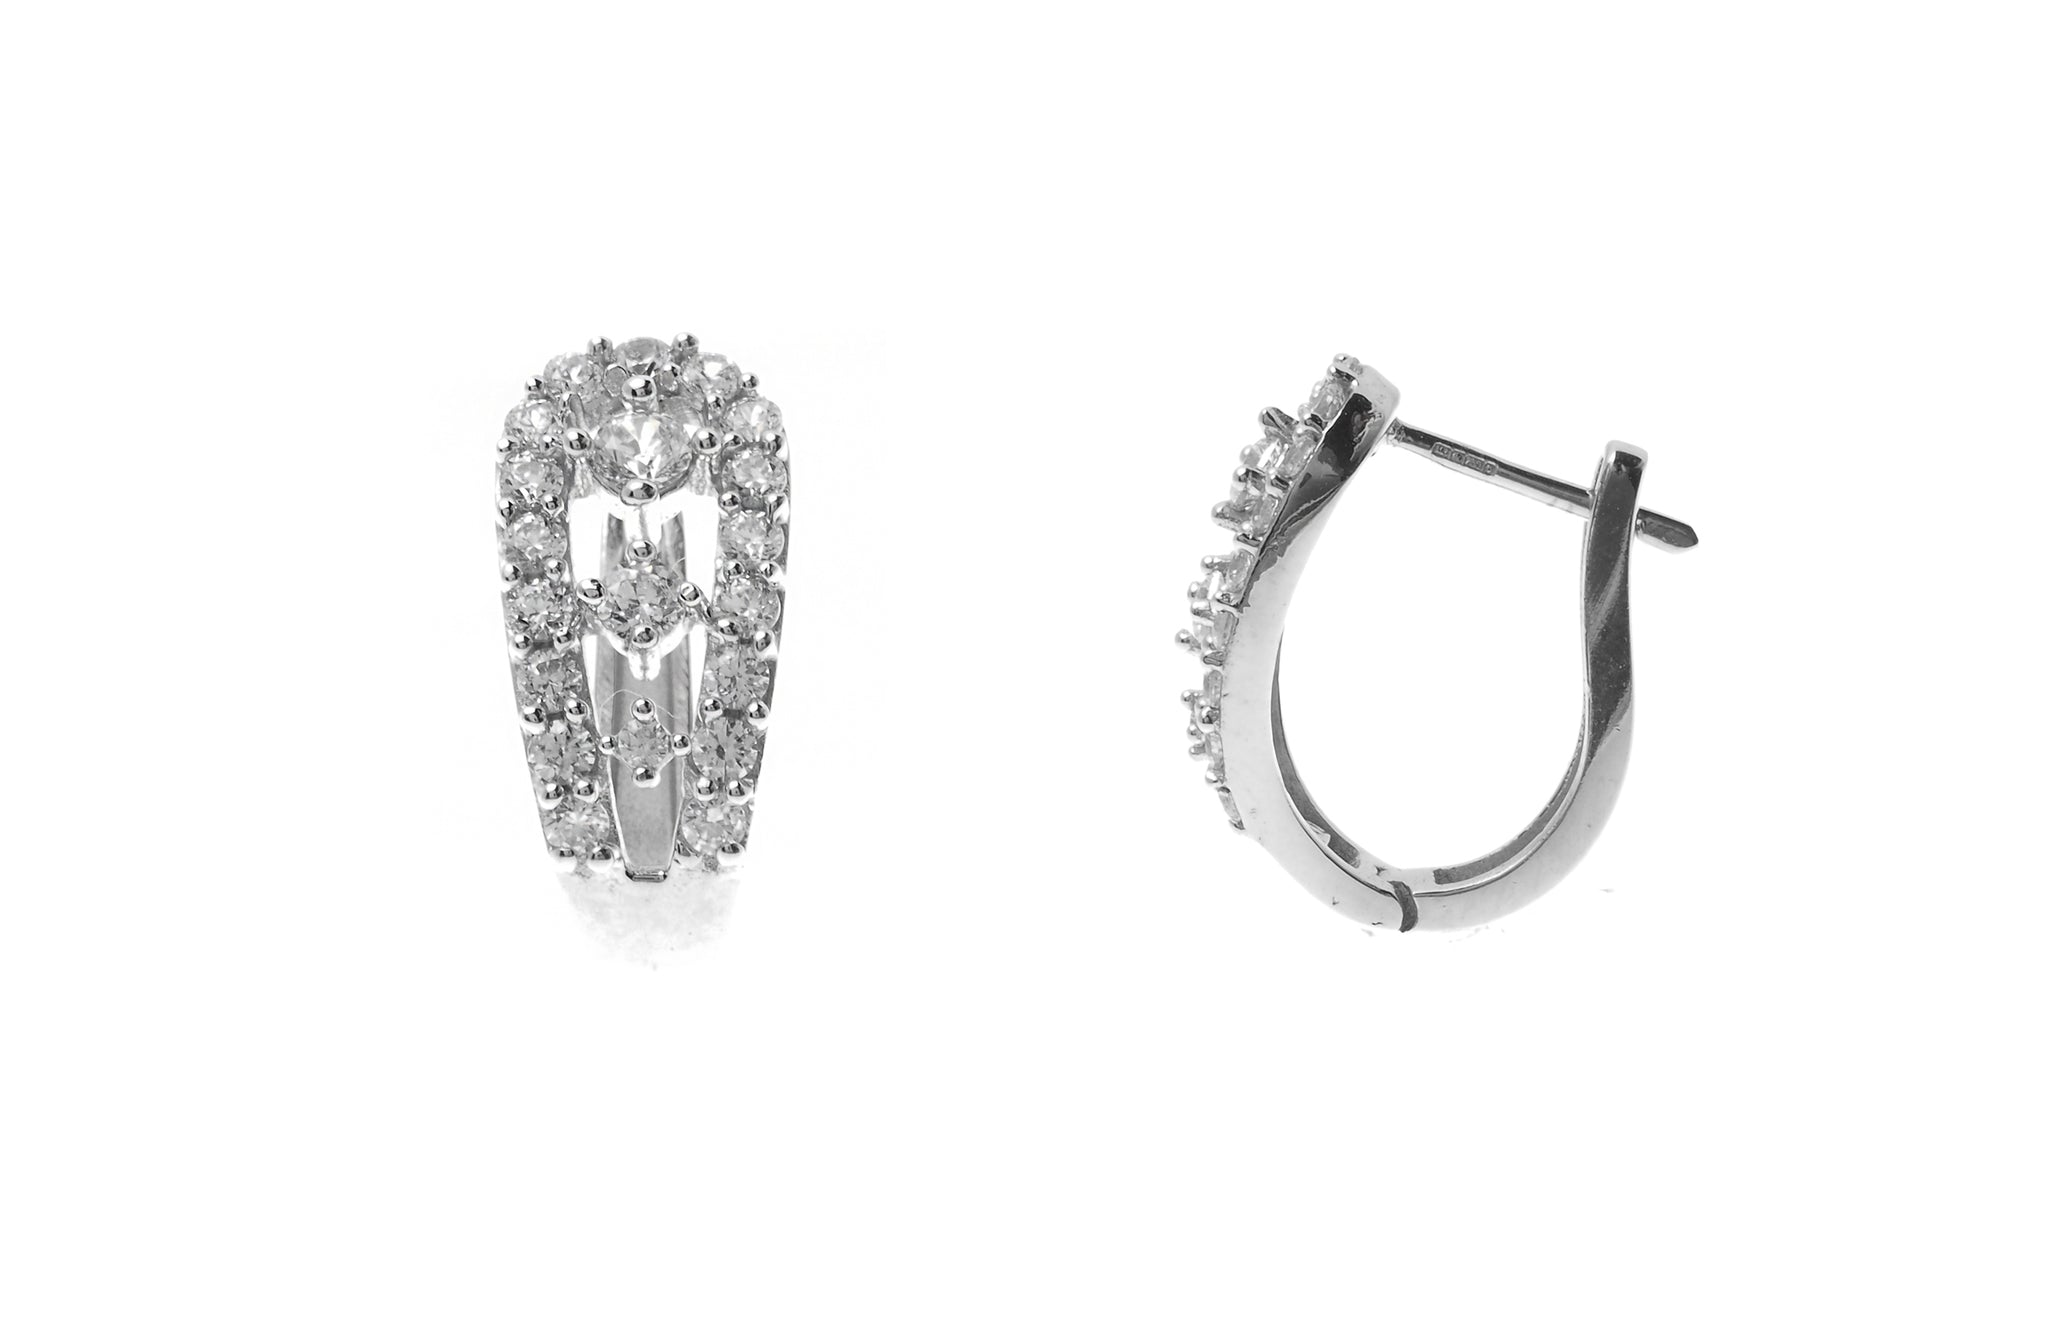 18ct White Gold Hoop Earrings set with Cubic Zirconia stones (4.91g) (BET12026)